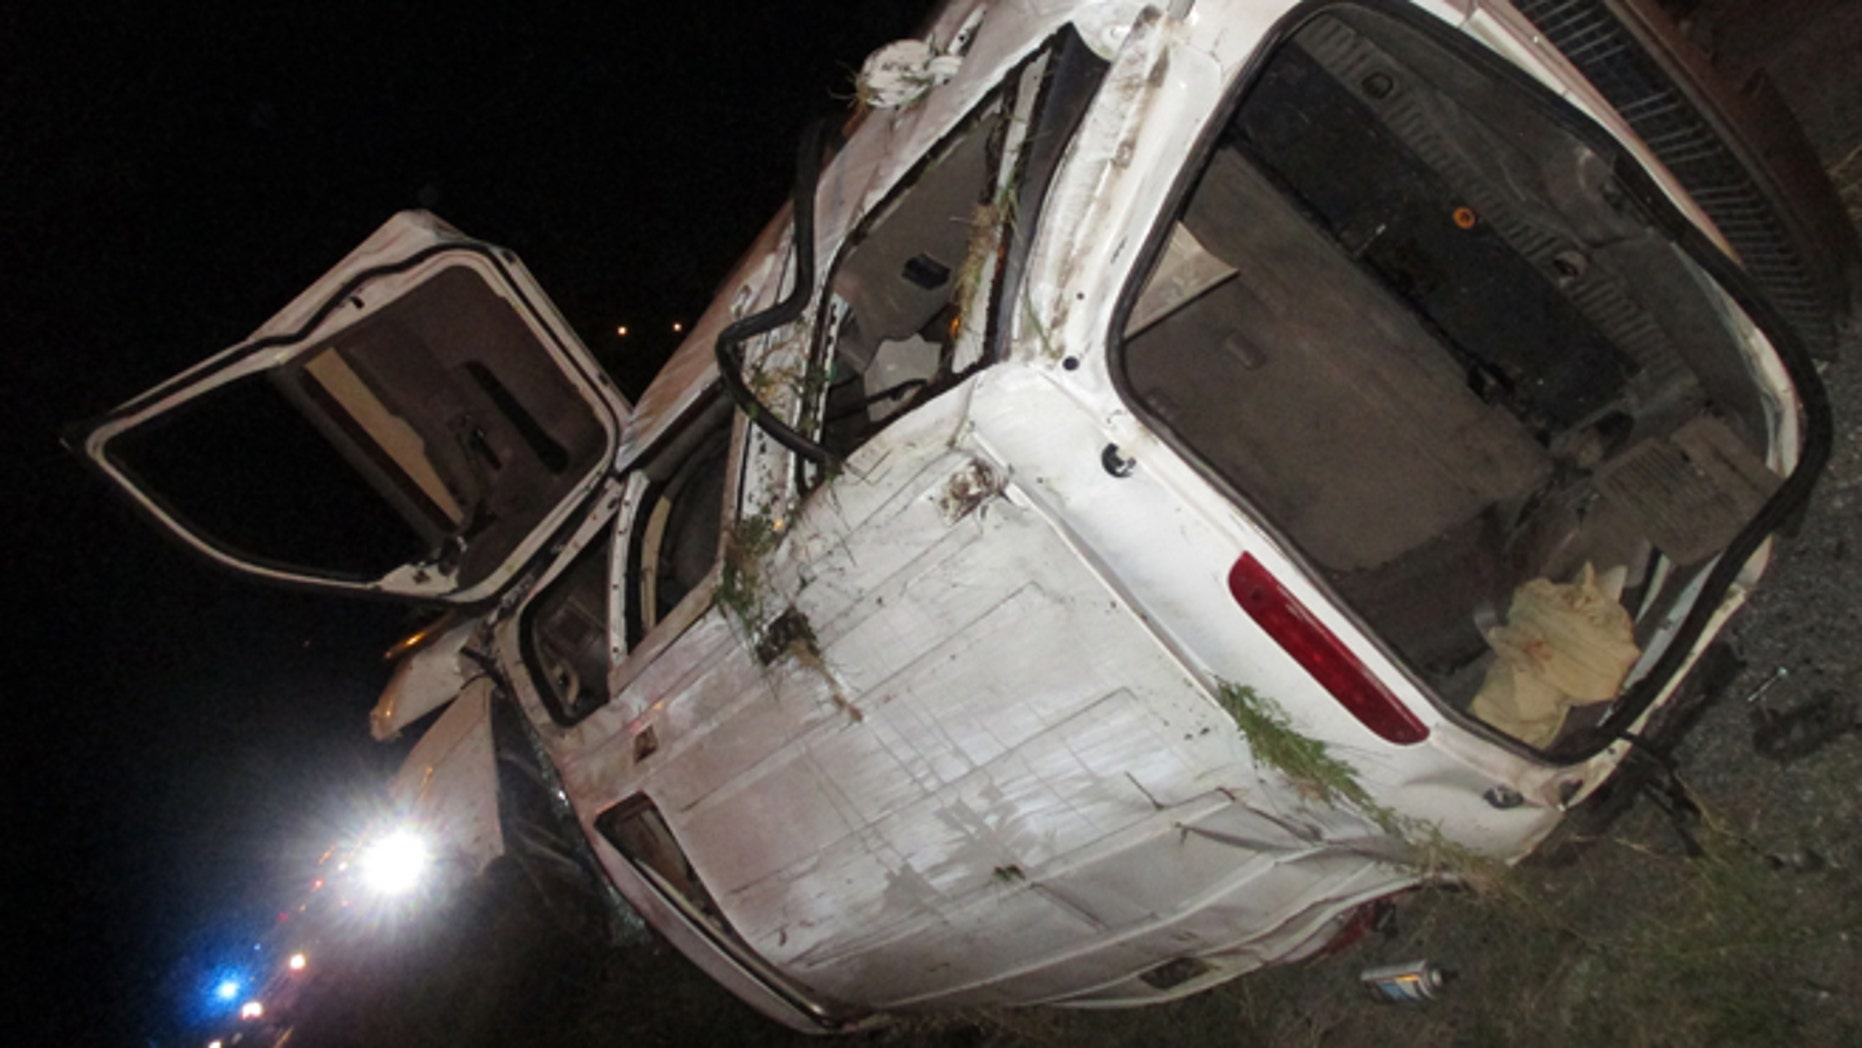 In this photo provided by the Edna Police Department, an SUV that flipped several times remains on the scene following a fatal crash and police chase Thursday, Sept. 24, 2015, in Edna, Texas. Officers tried to stop the SUV for a traffic violation but the vehicle sped away and police gave chase. (Edna Police Department via AP) MANDATORY CREDIT